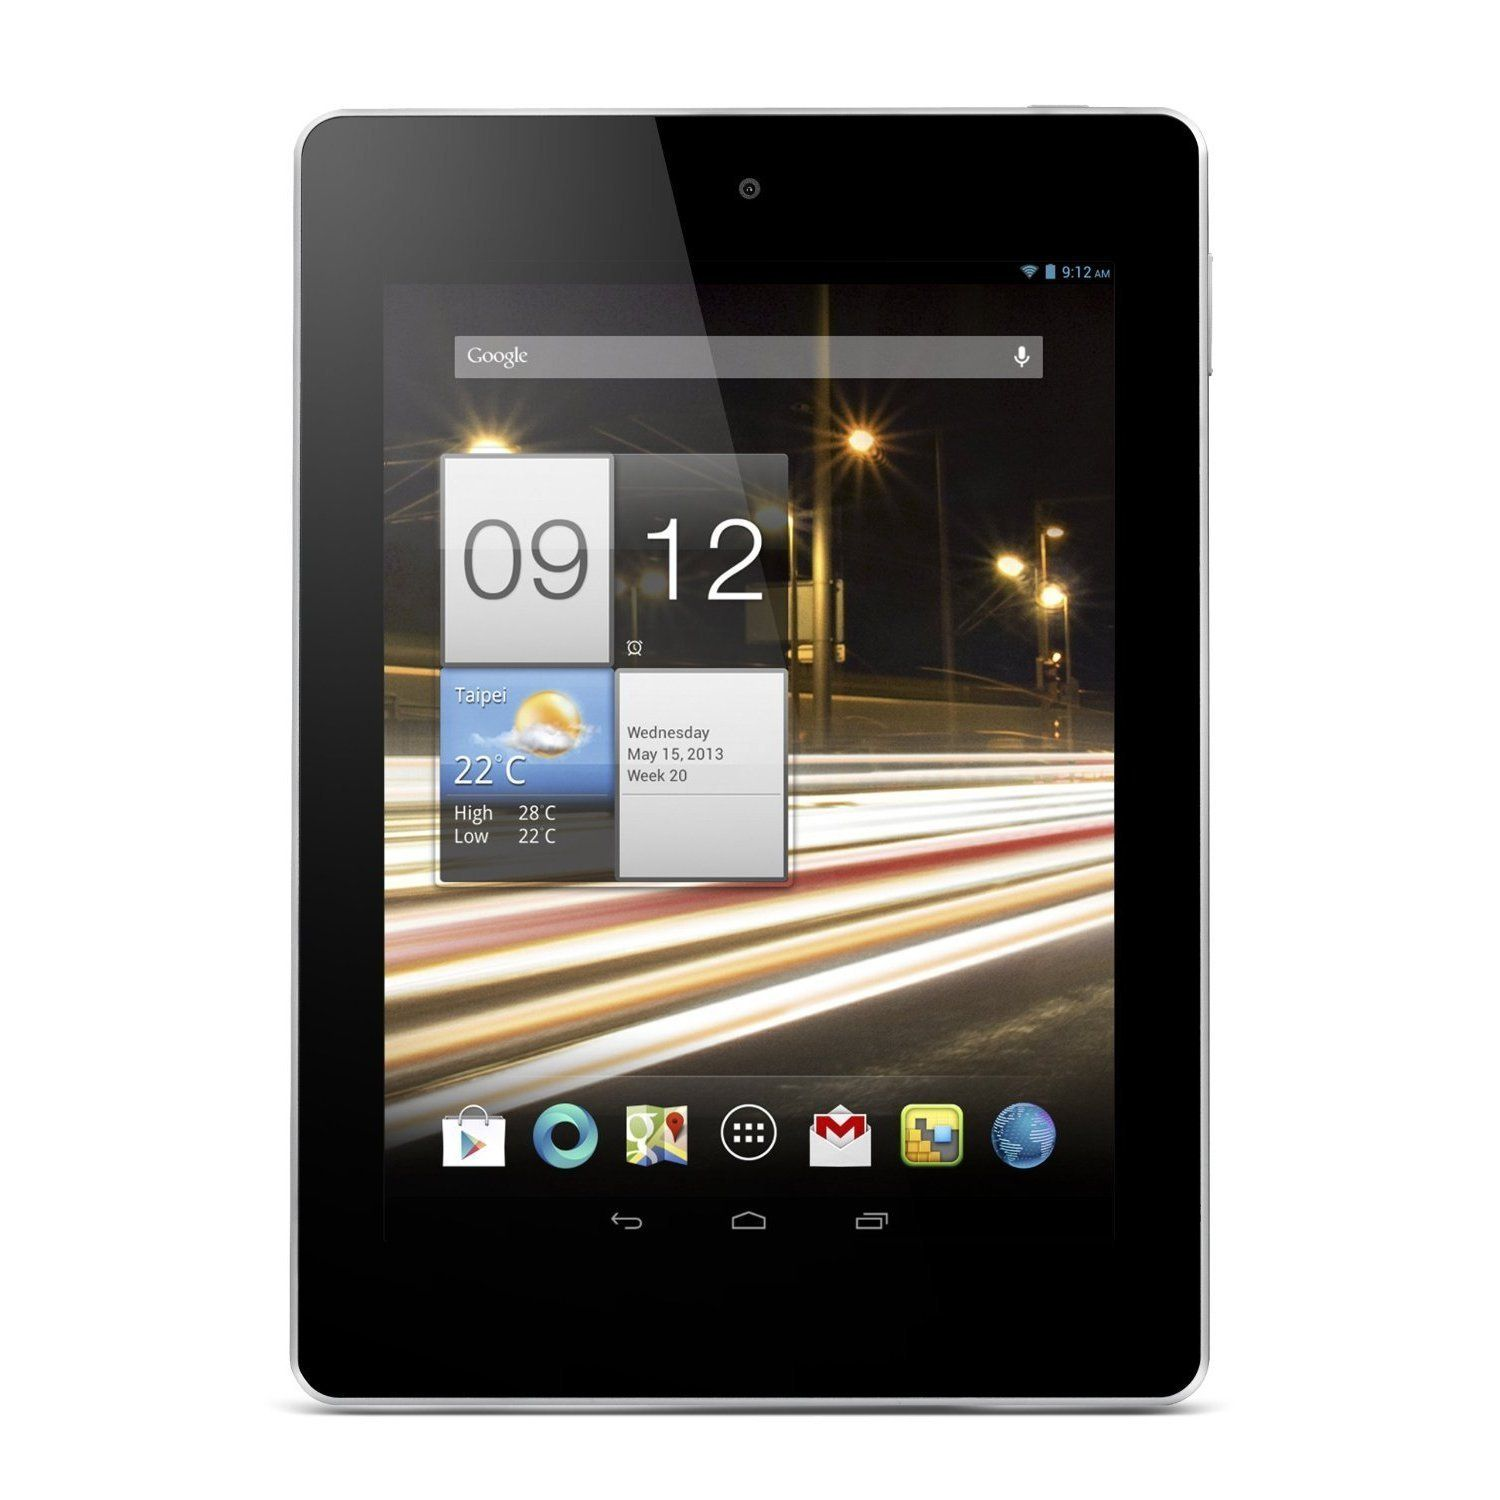 Tablet so good! Acer Iconia A1810L416 16 GB 7.9Inch